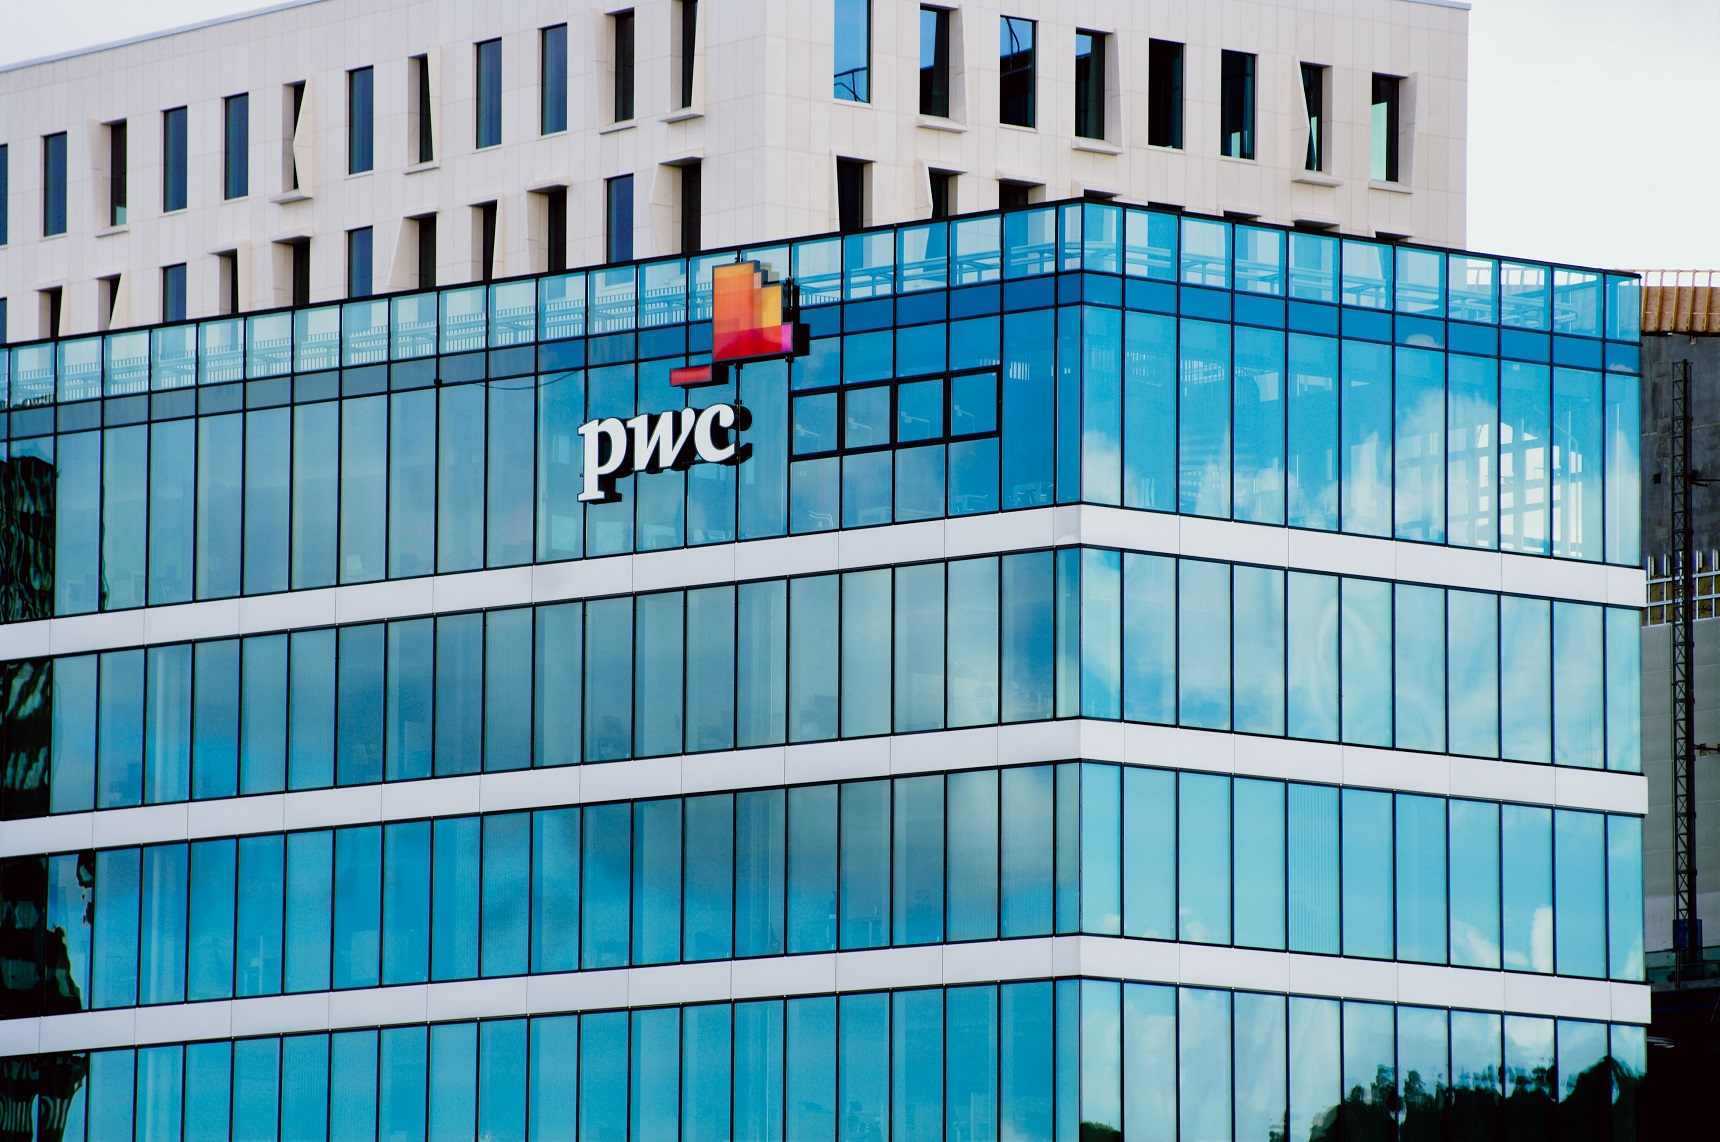 PwC Official Predicts Greater Institutional Interest in Cryptocurrency in 2019